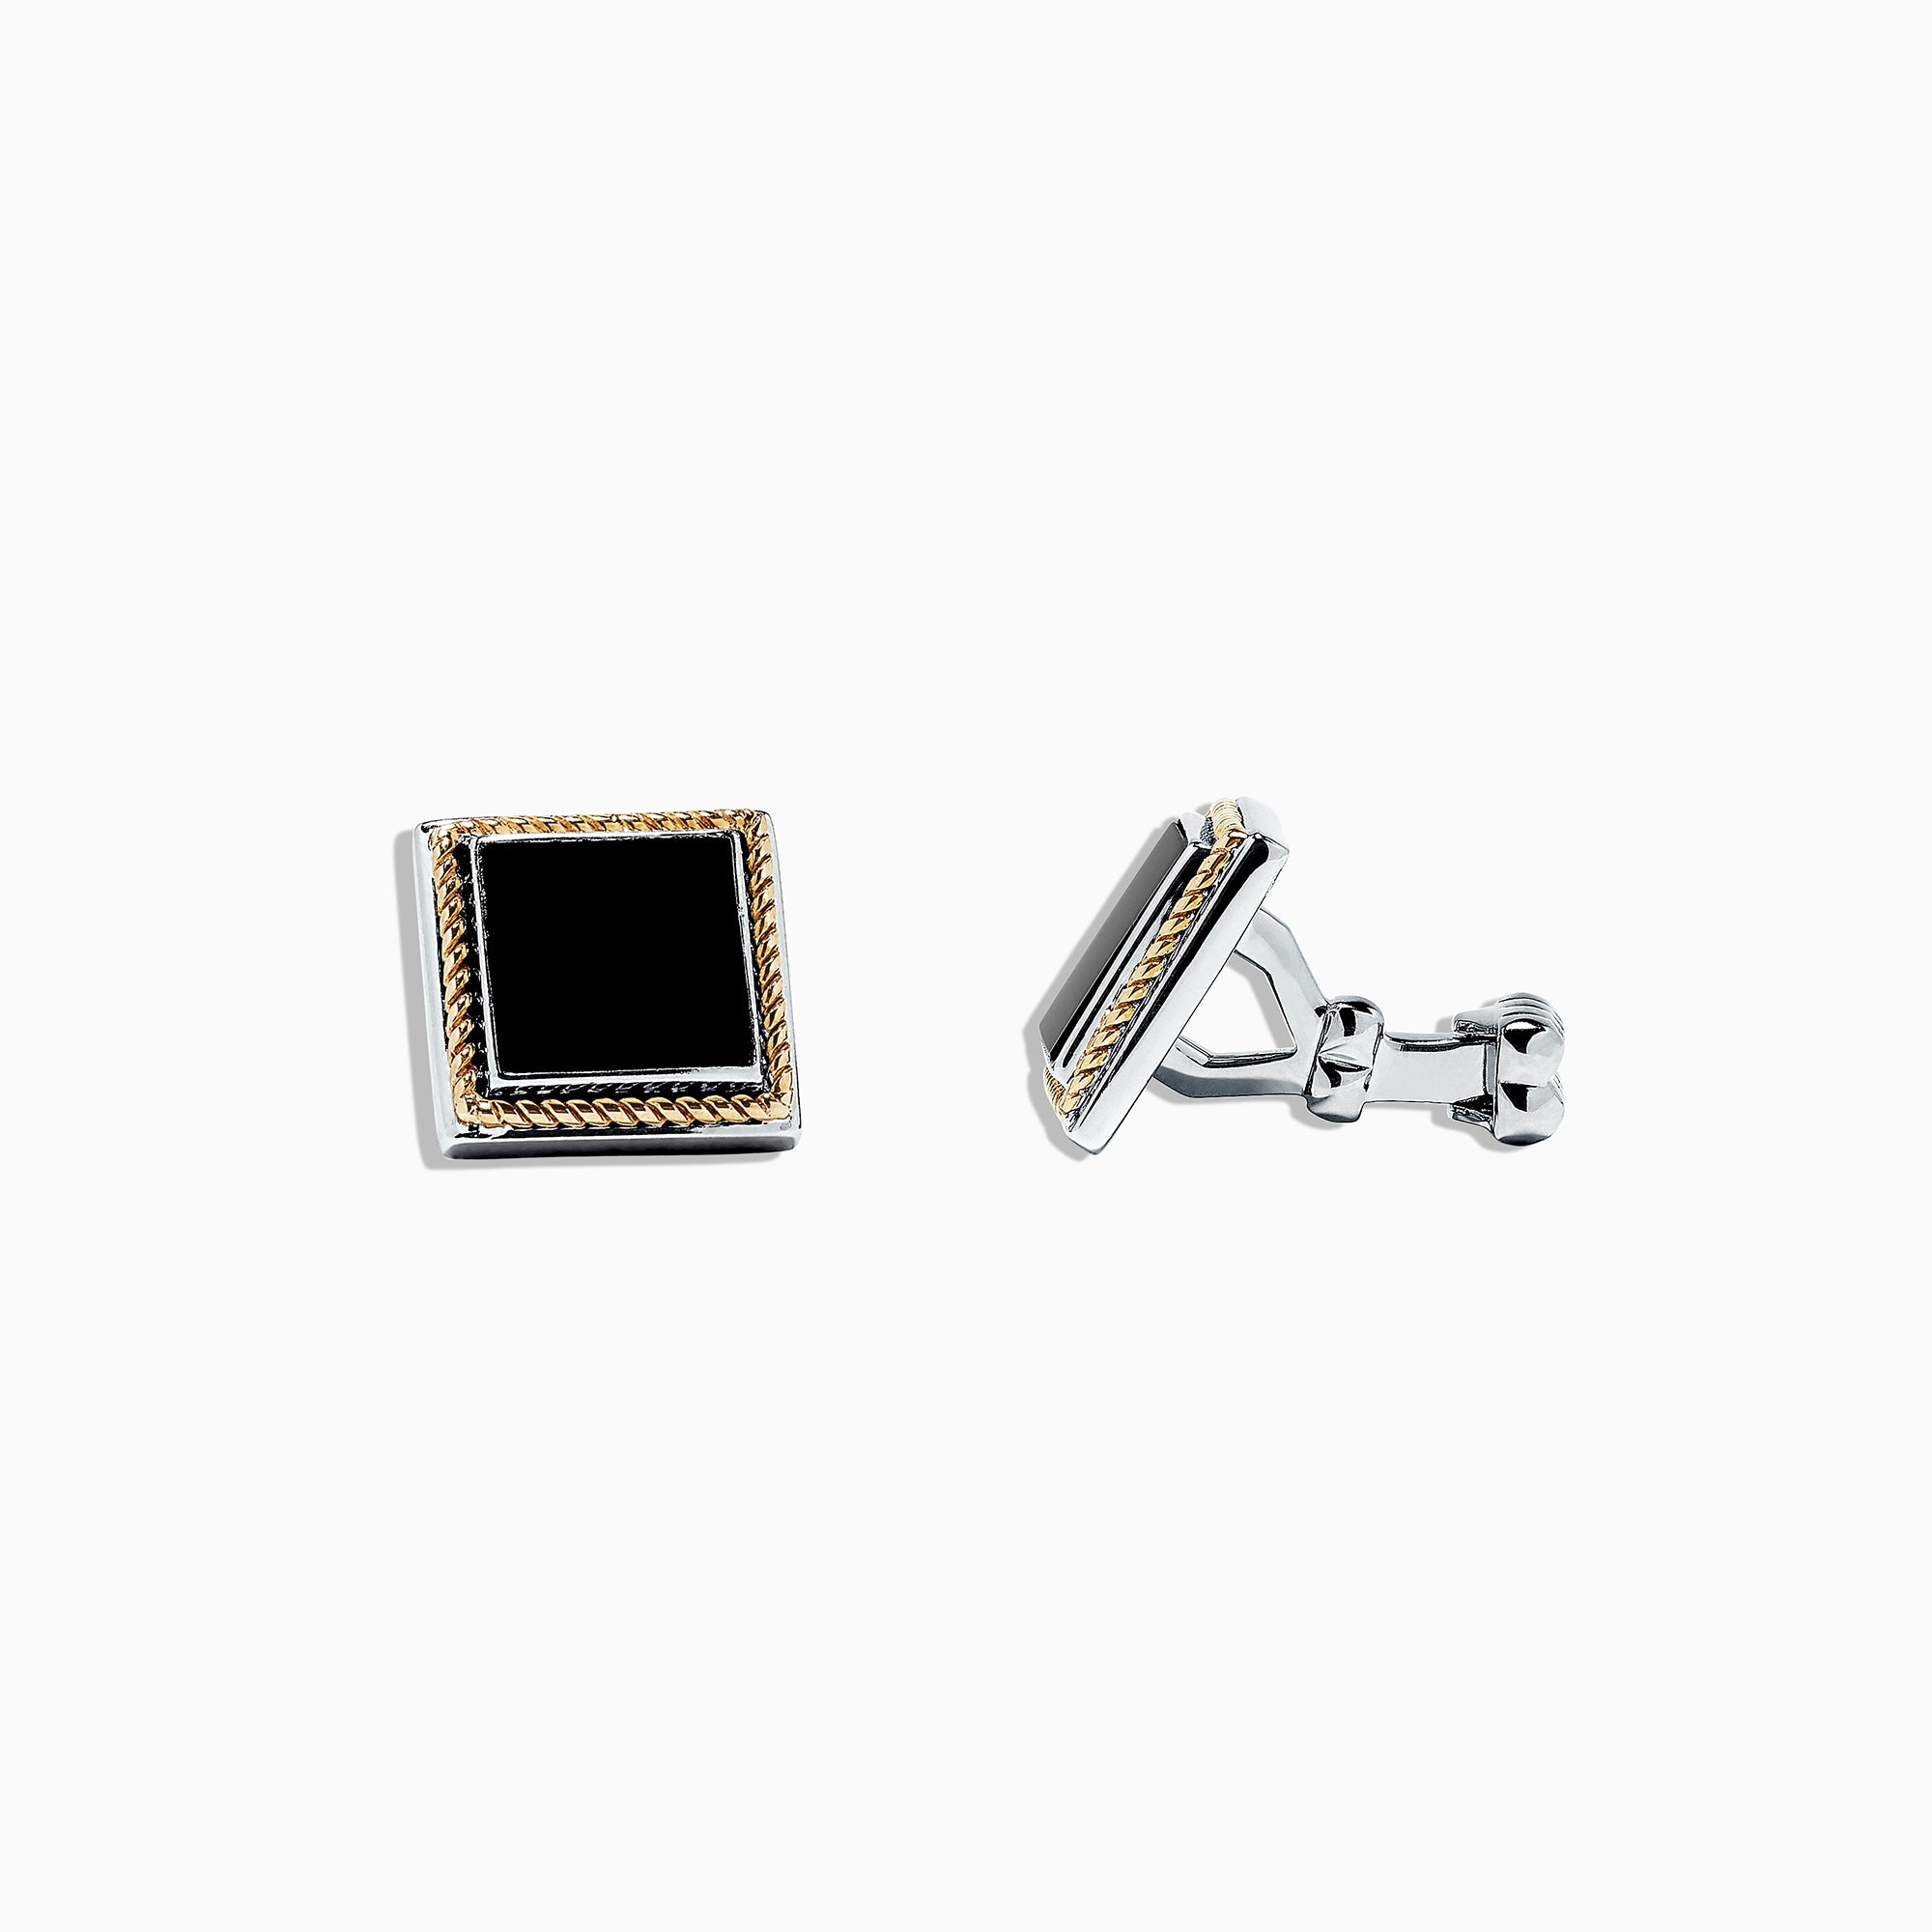 Effy Men's Sterling Silver and 14K Yellow Gold Onyx Cufflinks, 3.06 TCW